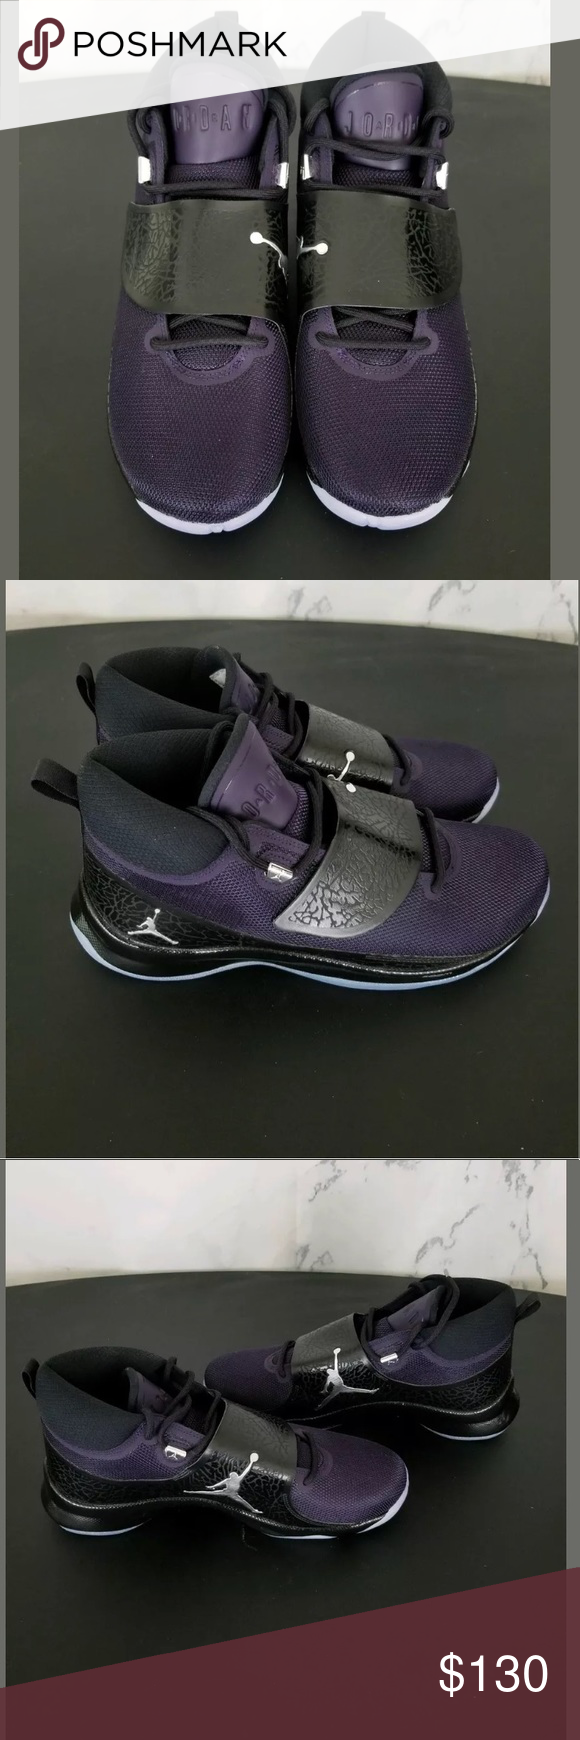 90998727533146 Nike Jordan Size 10 Superfly 5 PO Purple Dynasty Nike Jordan Size 10 Mens Superfly  5